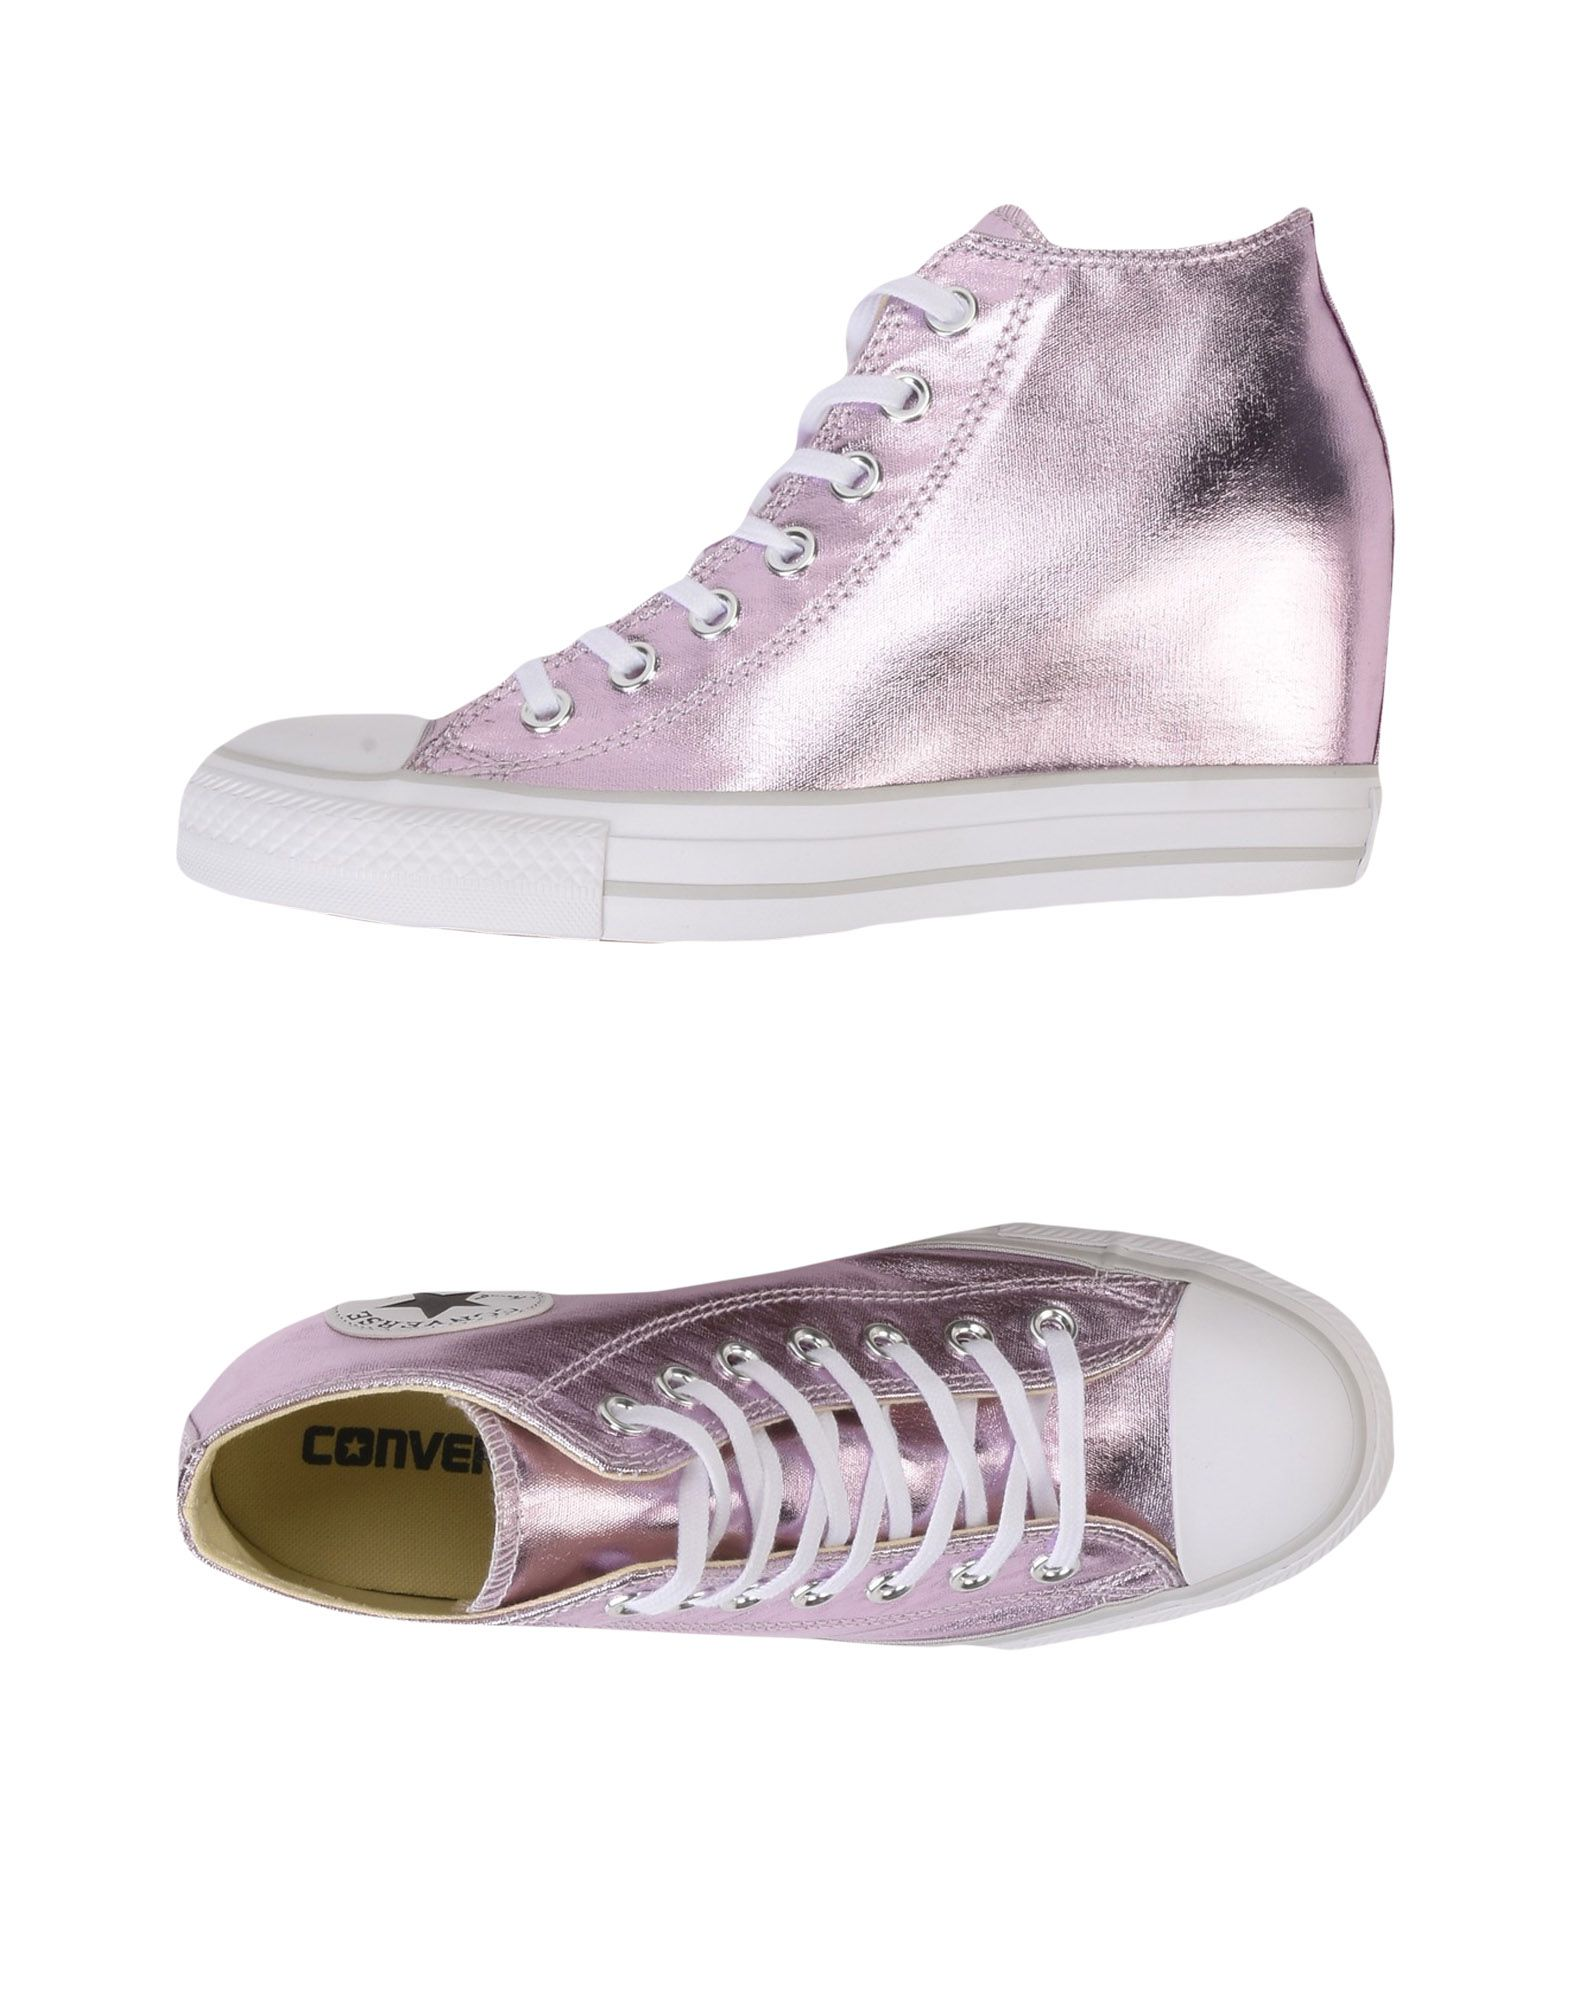 Sneakers Converse All Star Canvas Ct As Mid Lux Canvas Star Metallic - Donna - 11247784MM fa9a27